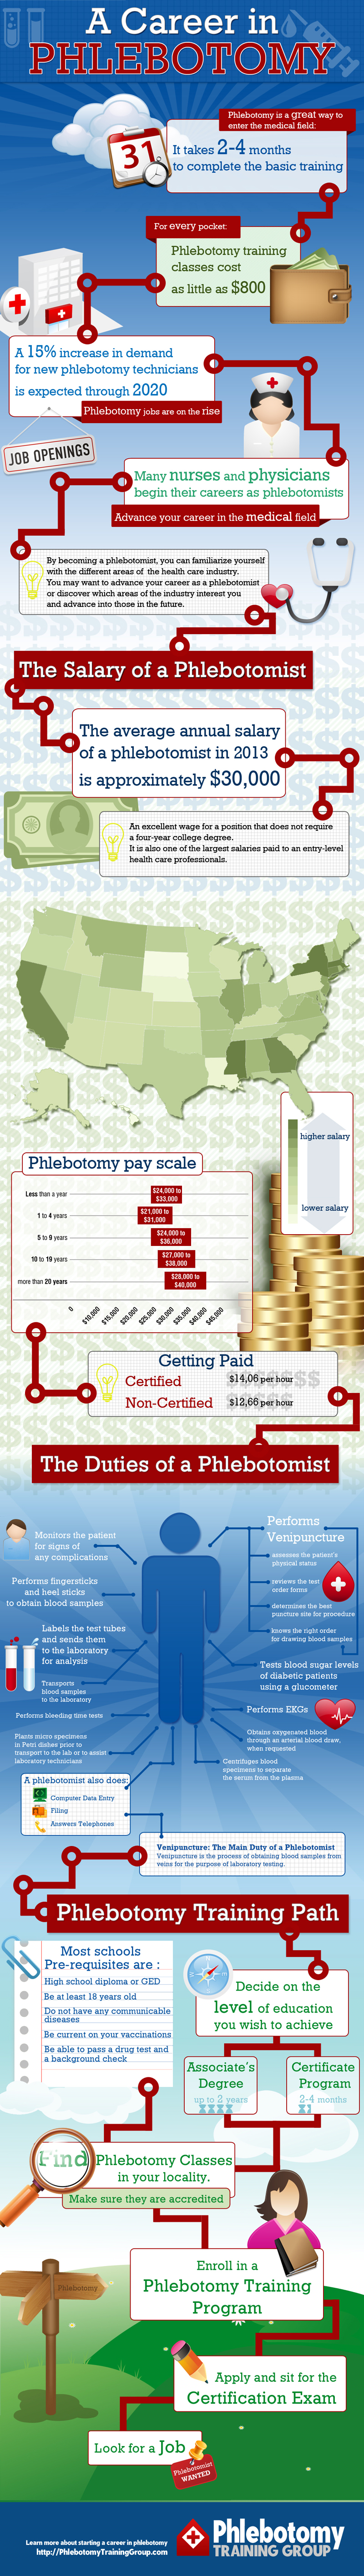 Should I Become A Phlebotomist